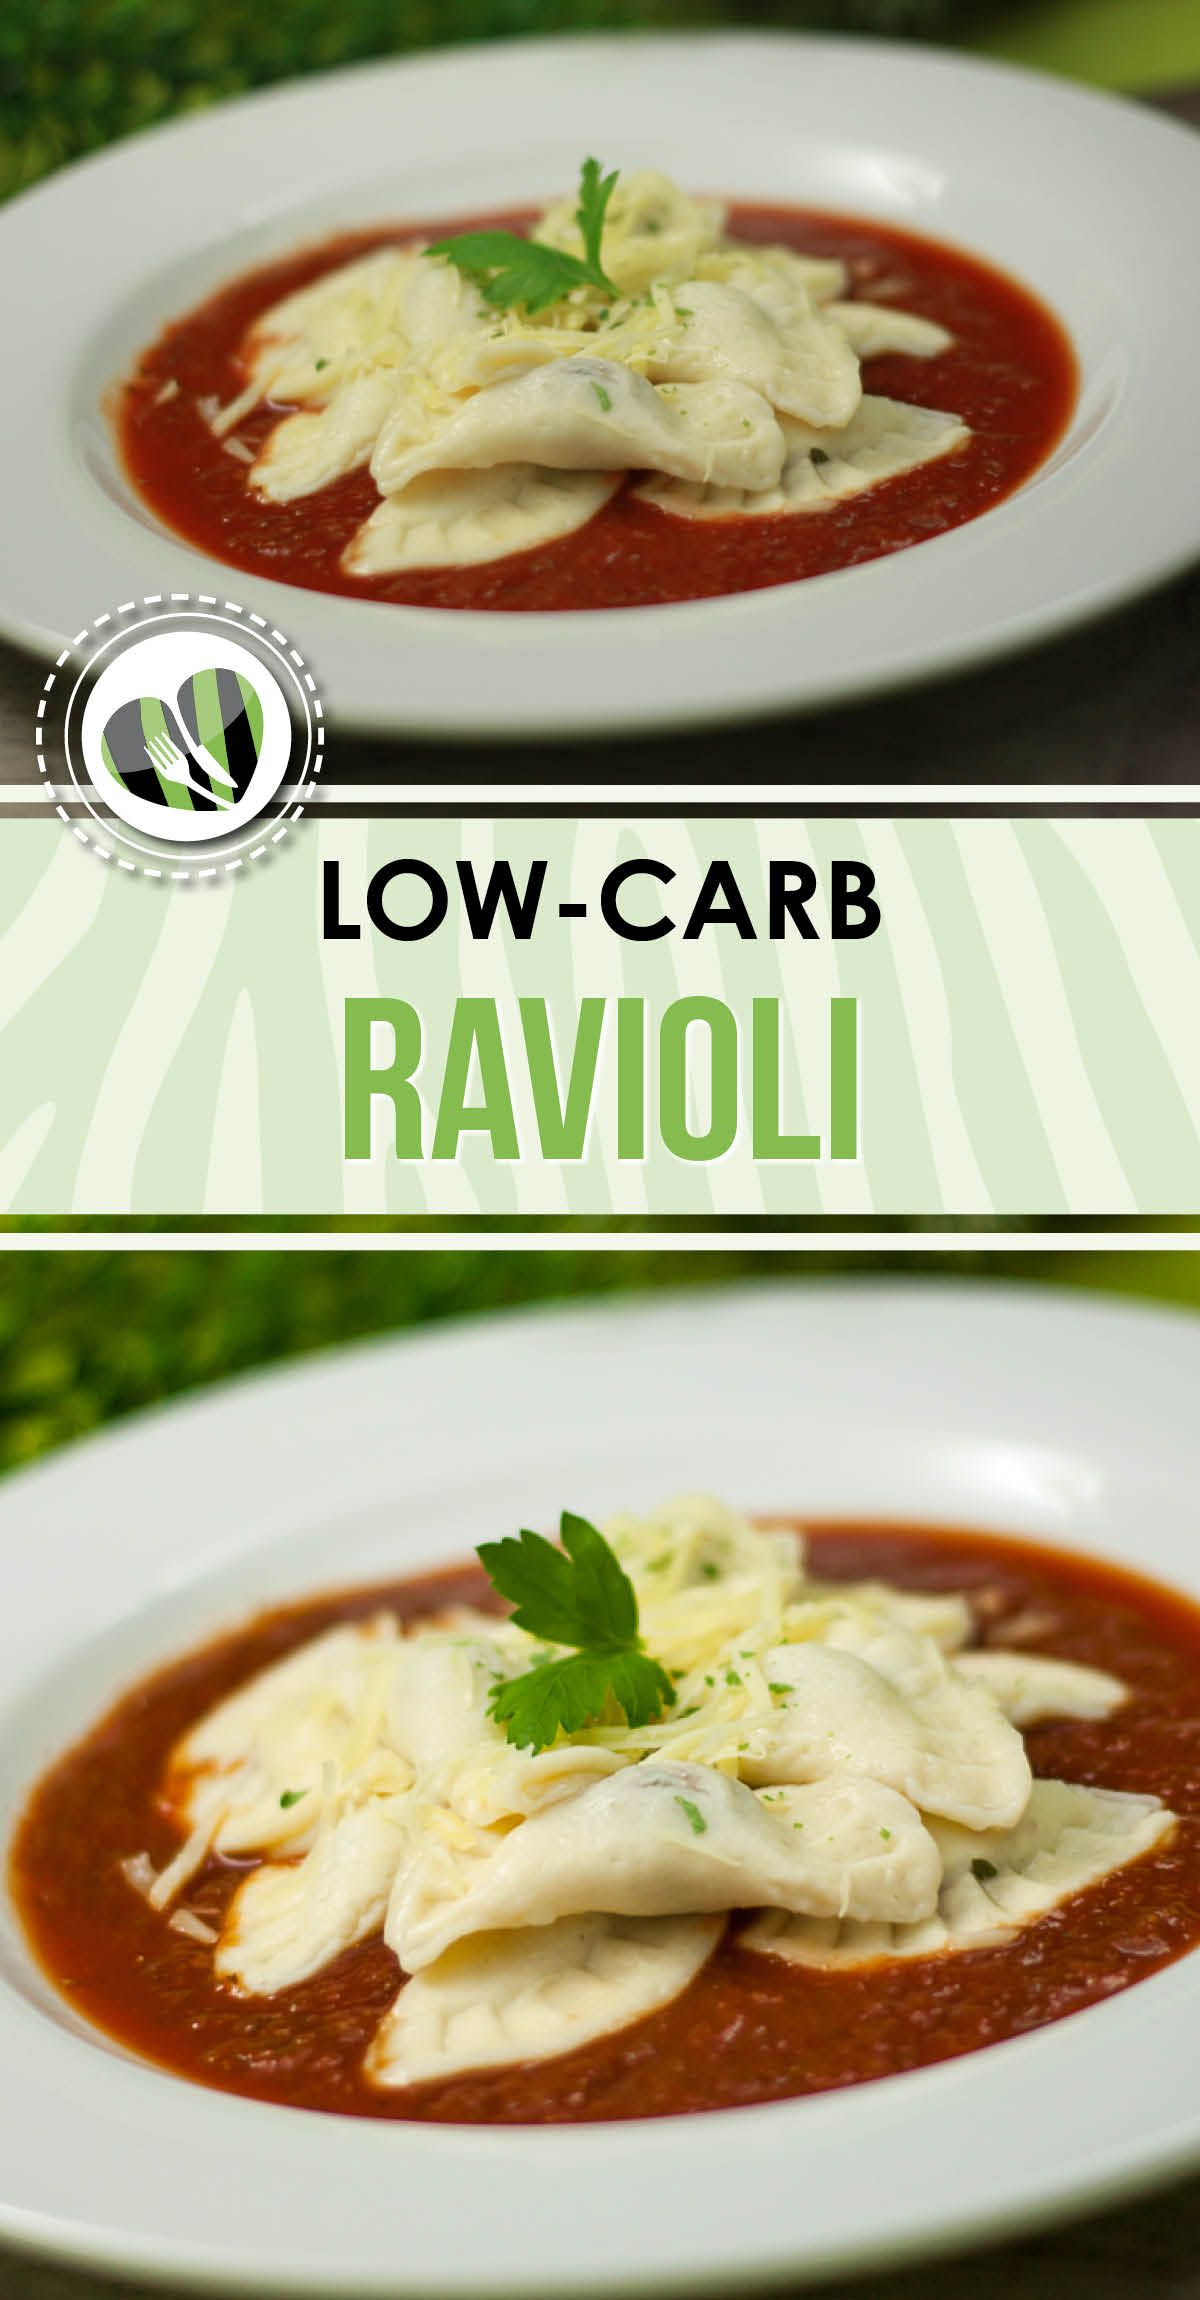 Photo of Low carb ravioli, homemade and delicious